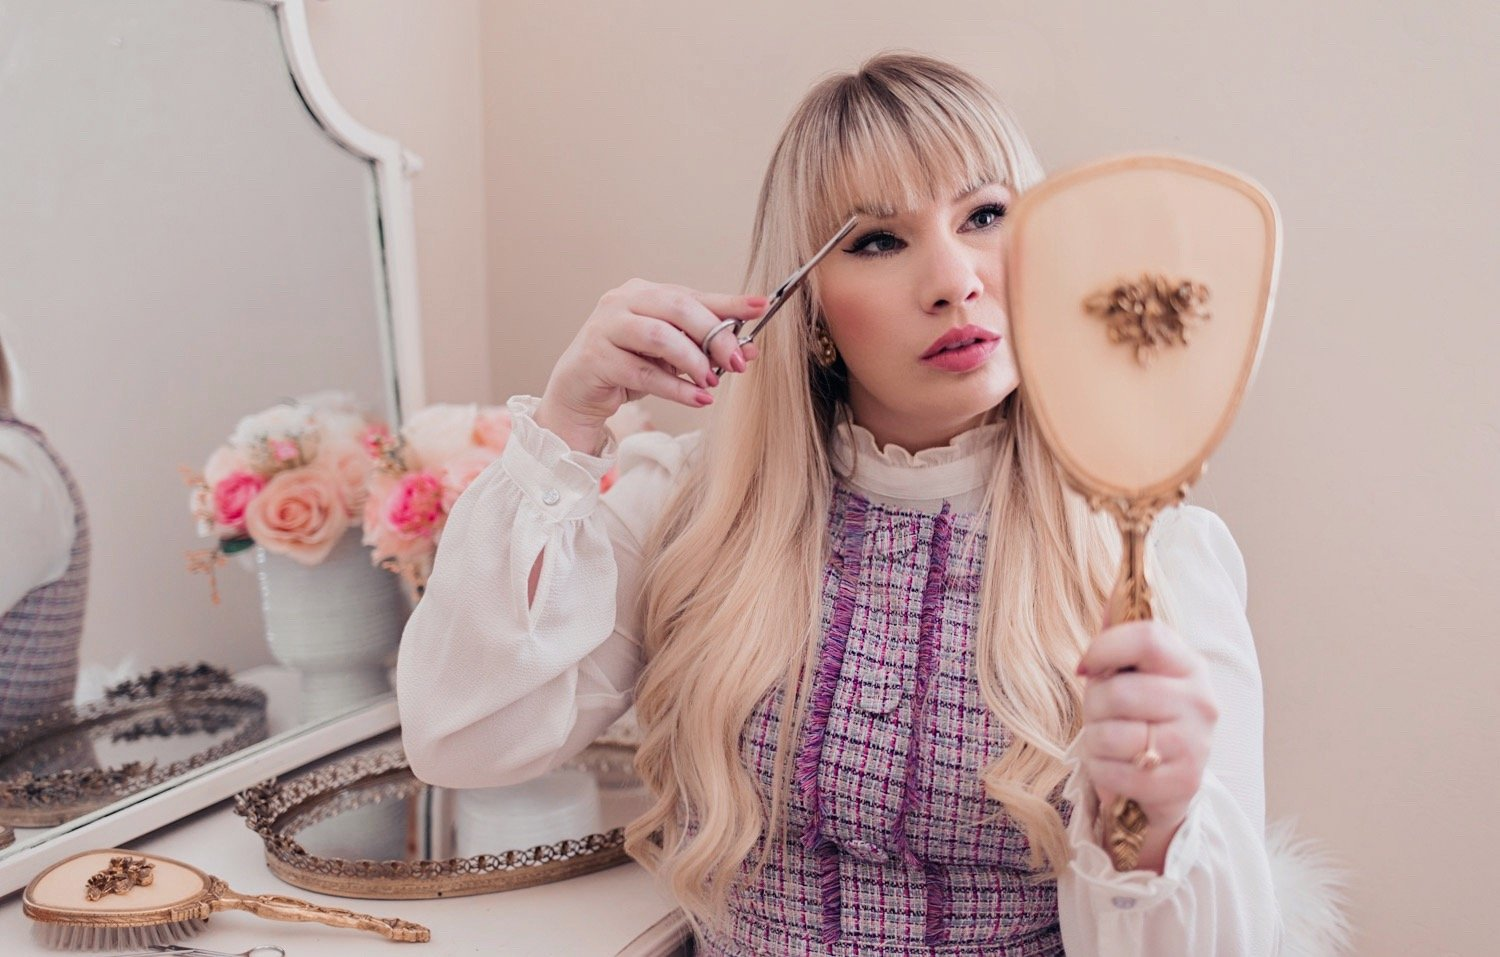 Elizabeth Hugen of Lizzie in Lace shares How to Cut Your Own Bangs at Home